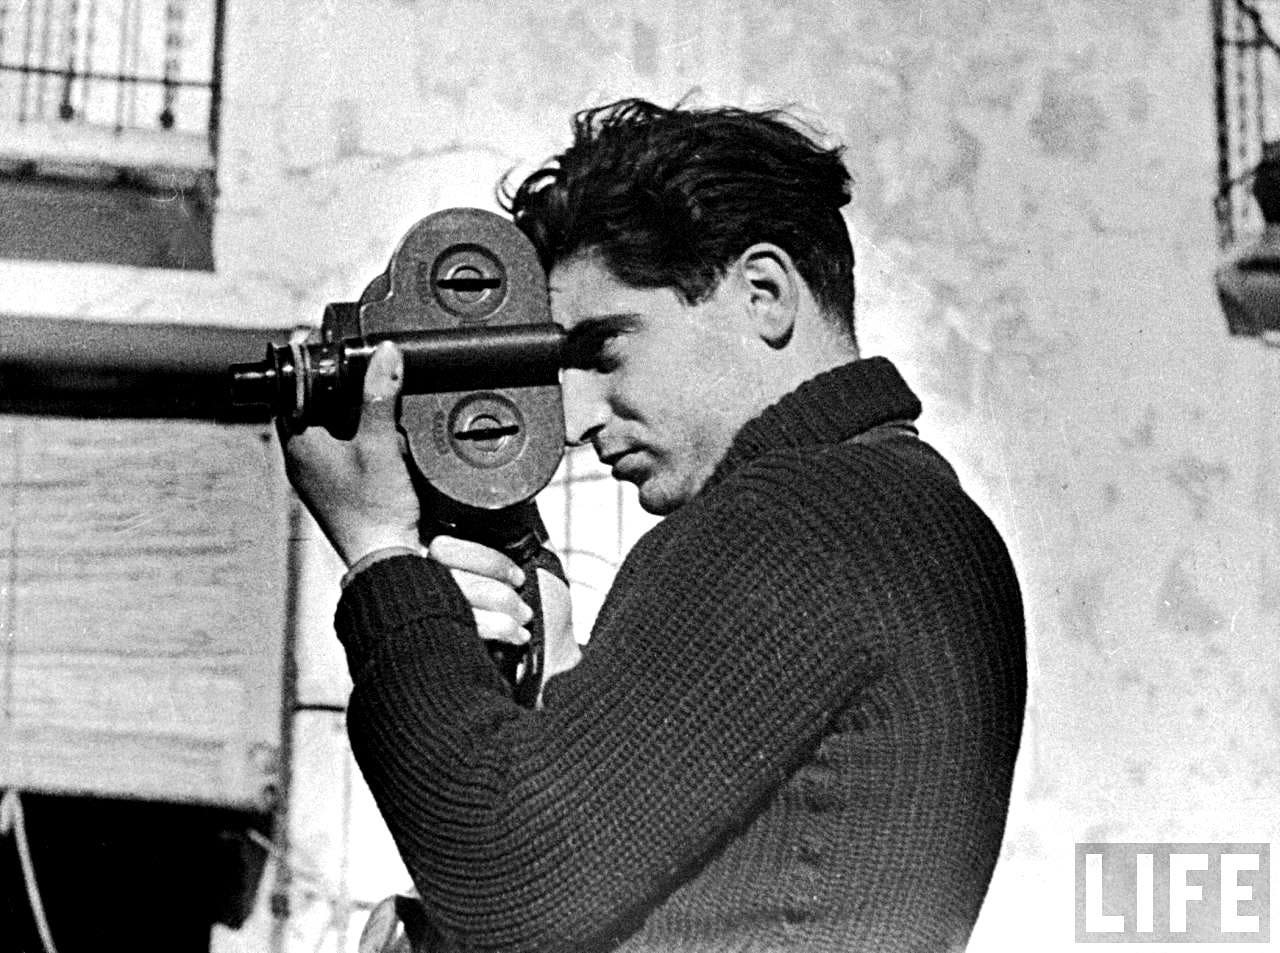 This Interview Is the Only Known Recording of Robert Capa